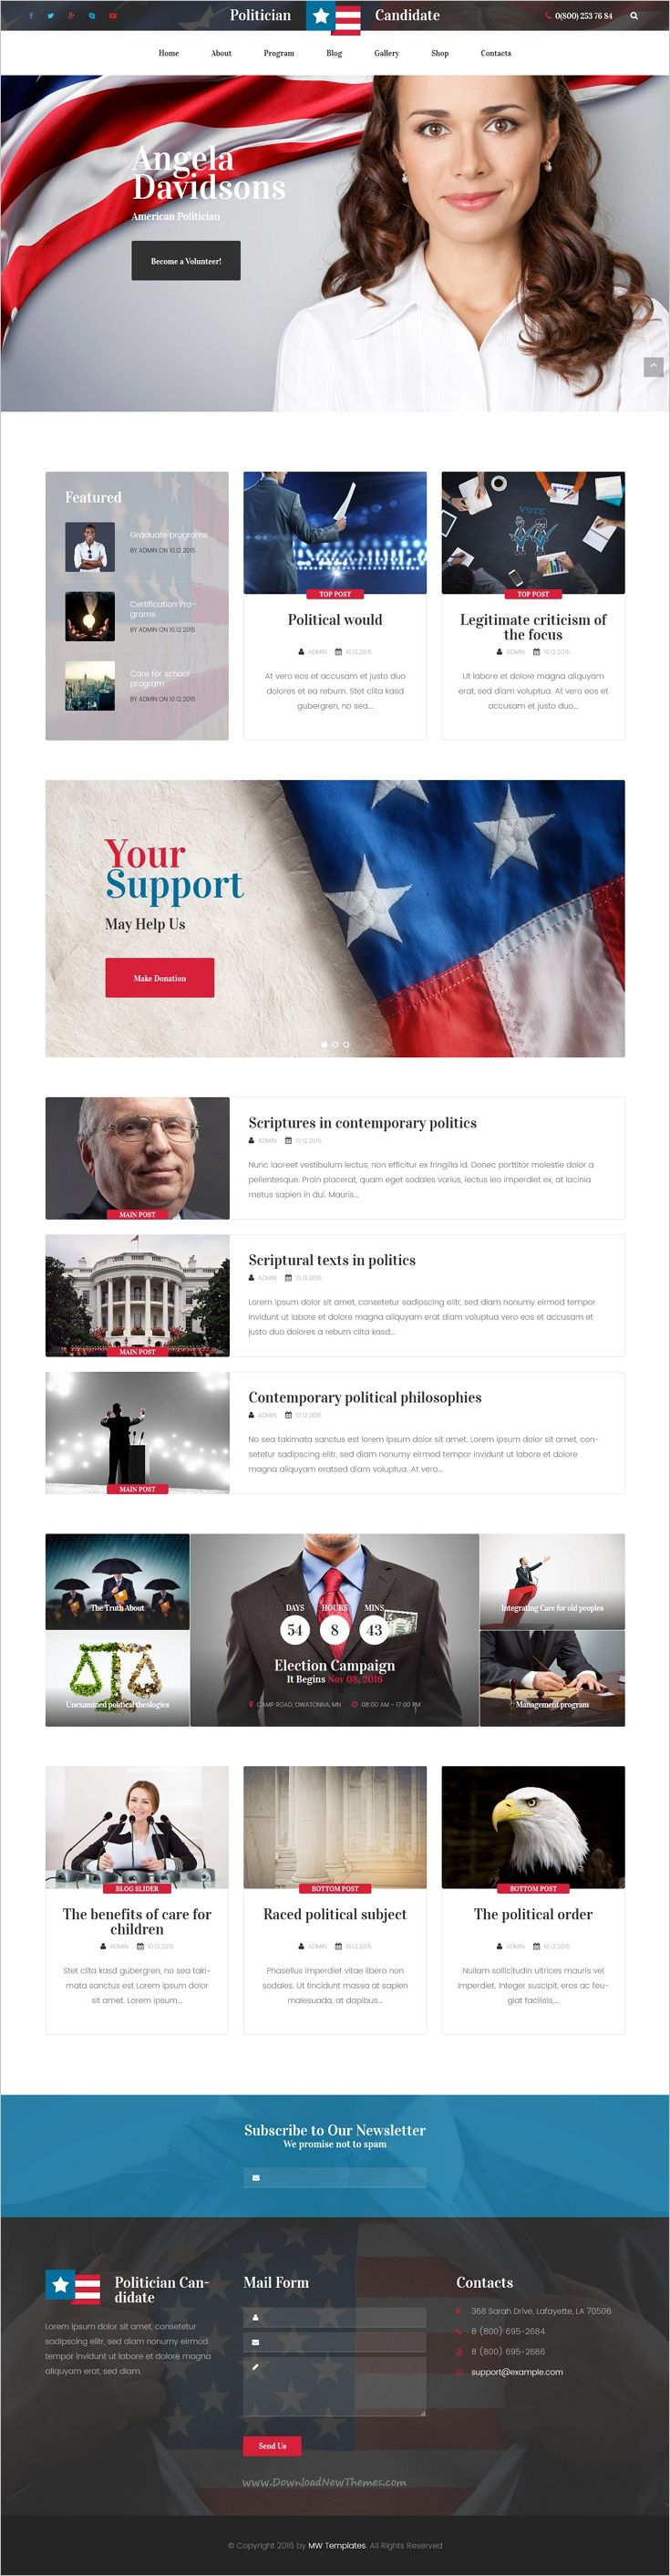 Politician is a modern and functional responsive #WordPress theme for #political #party #candidate website download now➩ https://themeforest.net/item/politician-political-party-candidate-modern-wordpress-theme/18704971?ref=Datasata